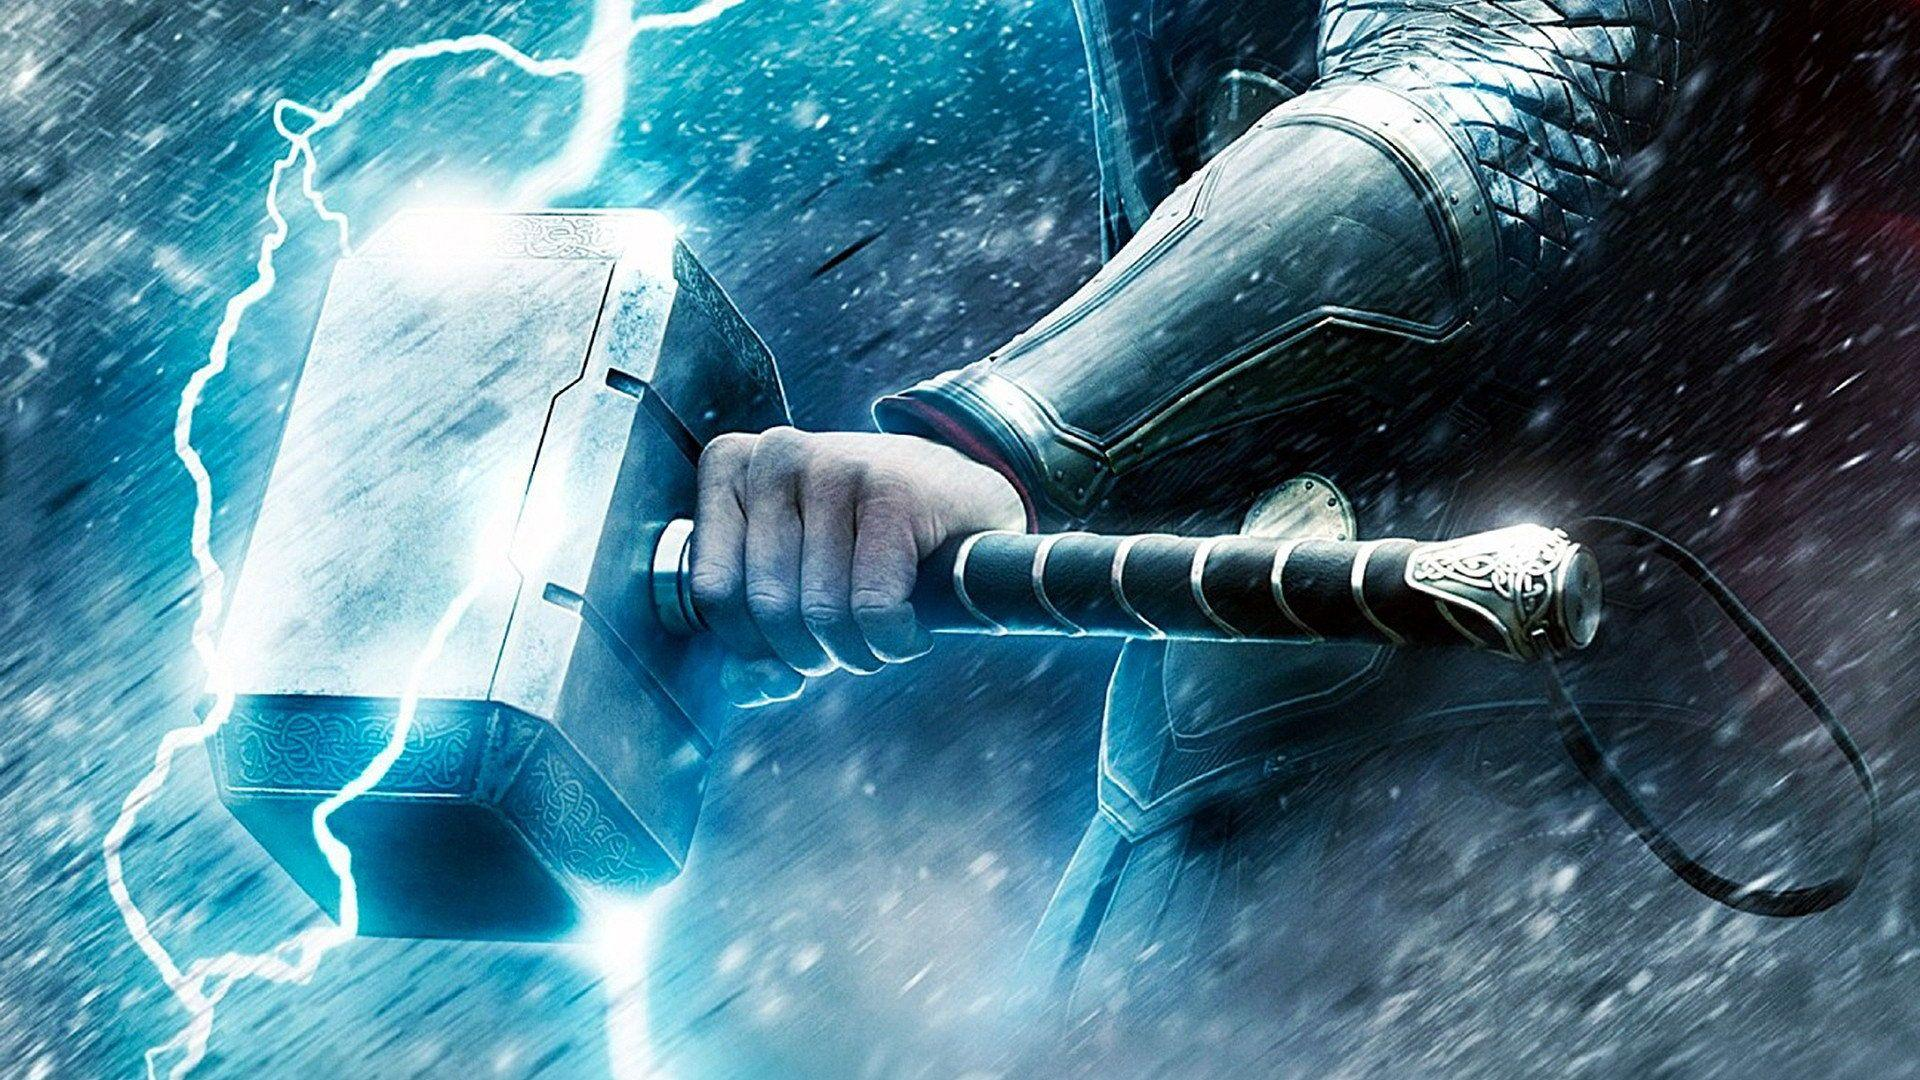 Hammer Of Thor Wallpapers Wallpaper Cave